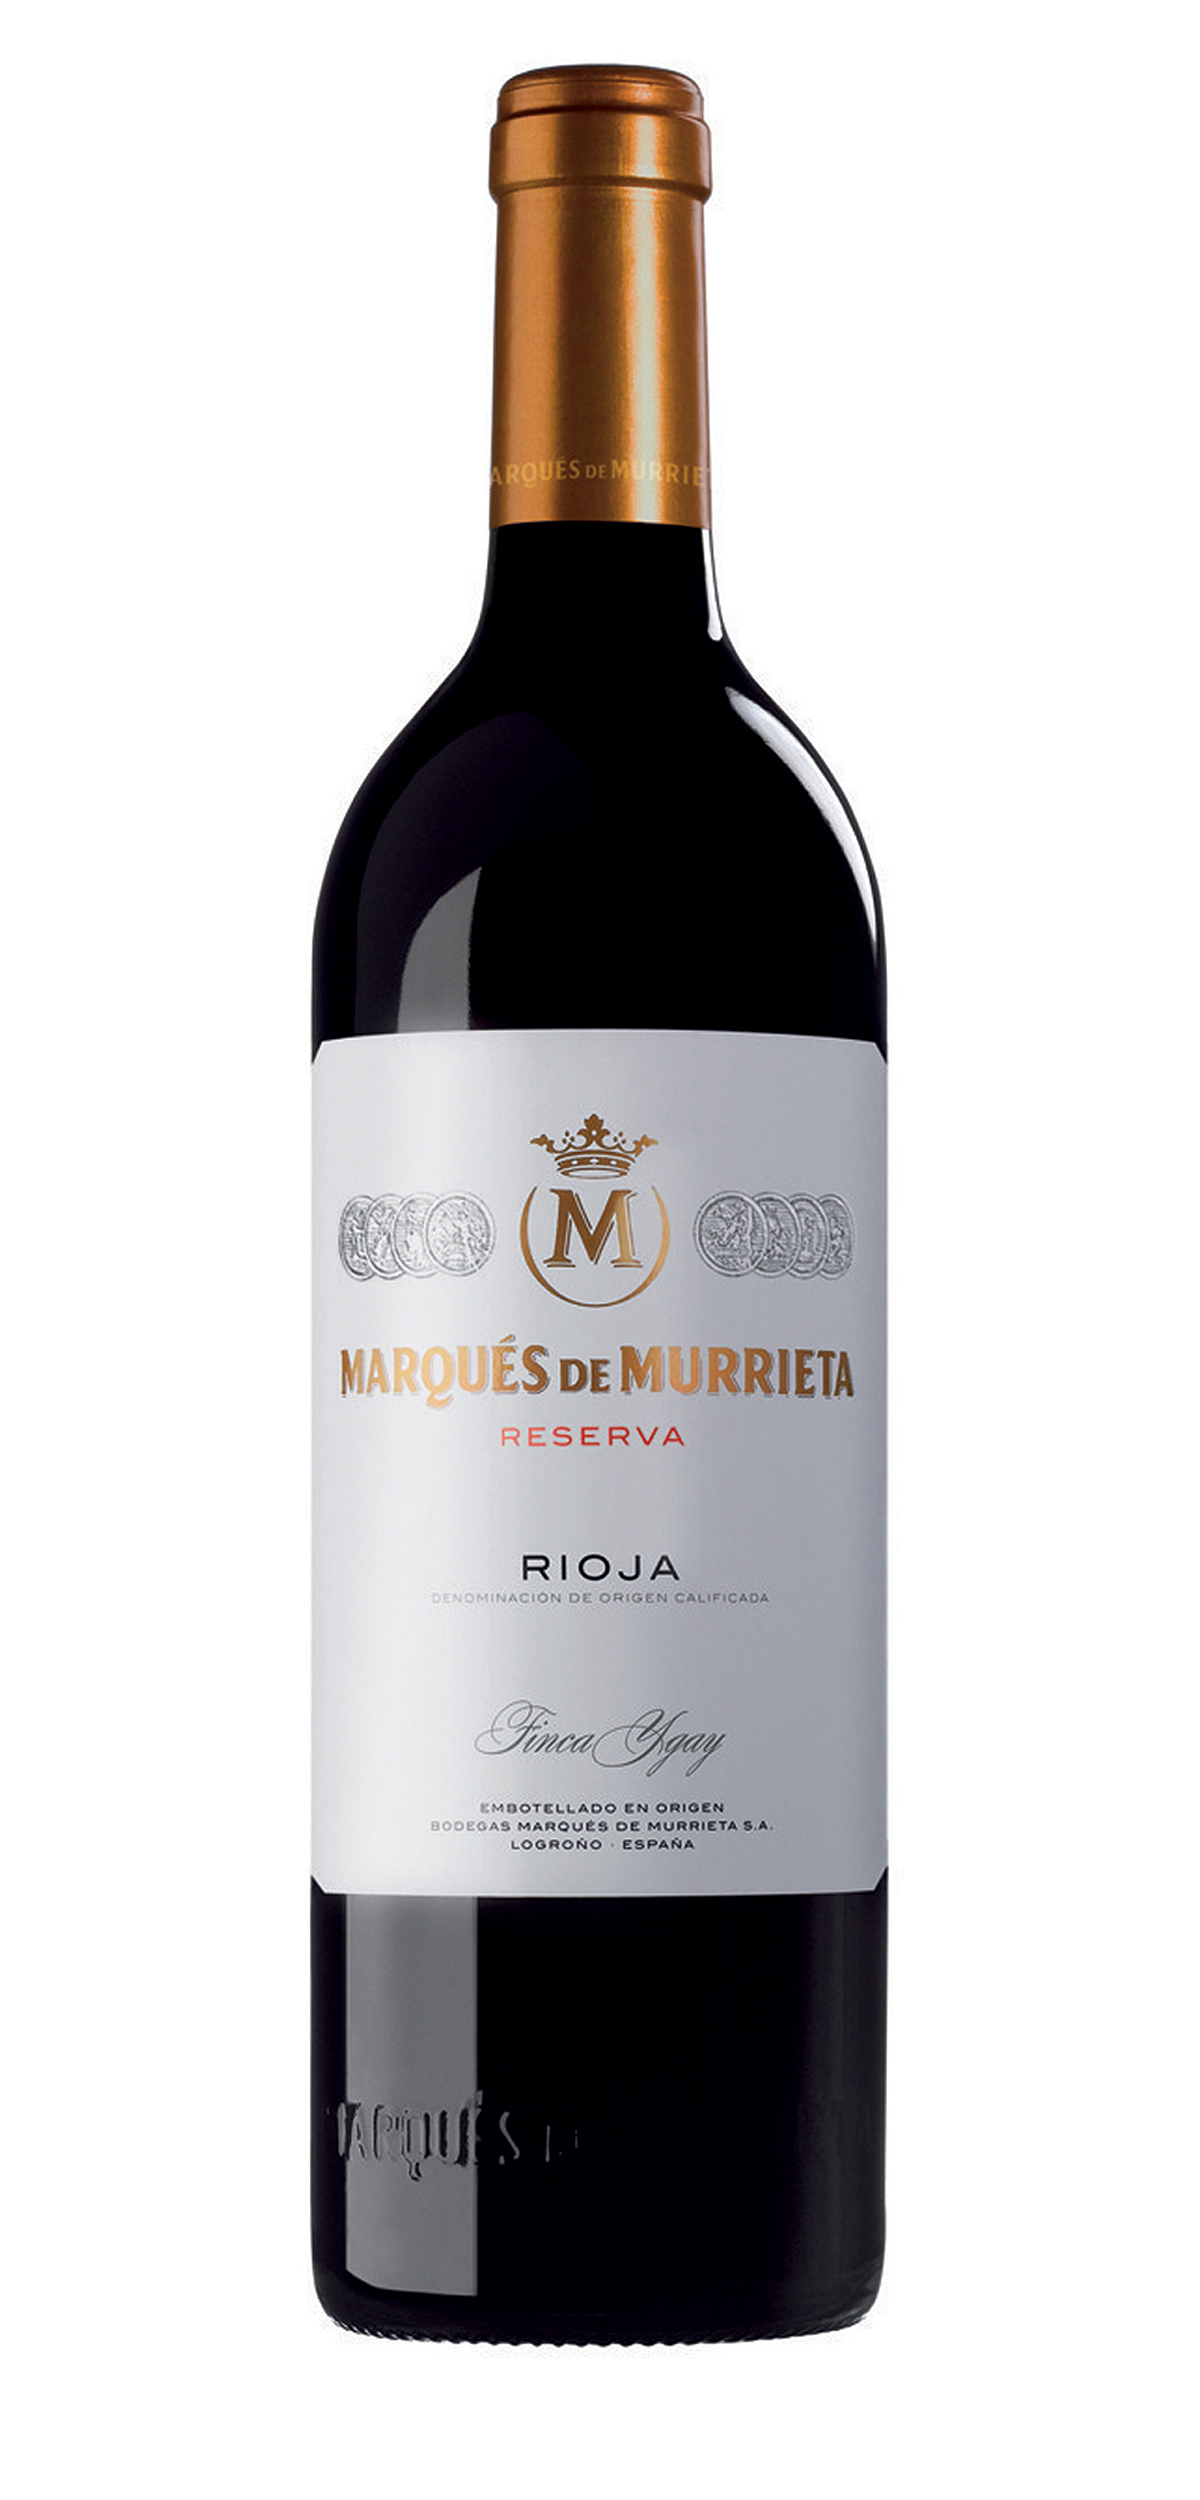 Marques de Murrieta Reserva wine bottle design